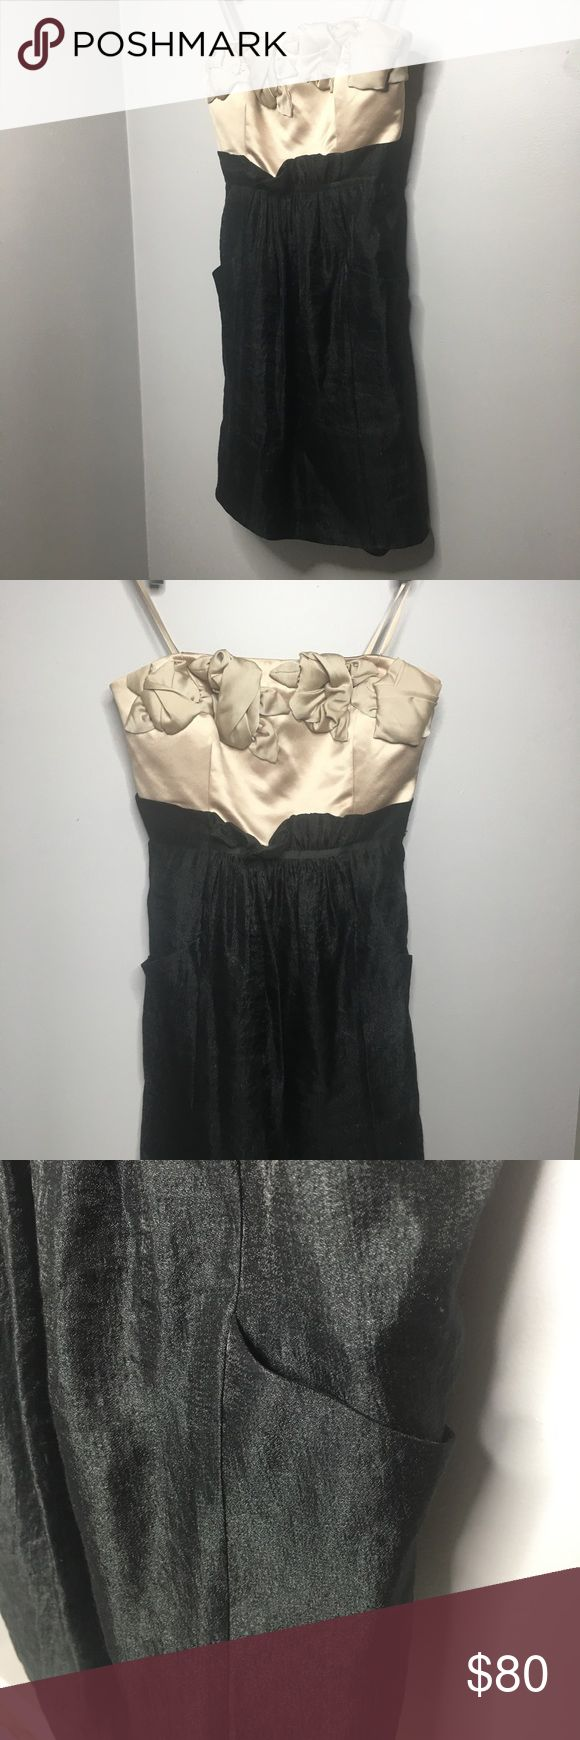 BCBG Black & Cream Cocktail dress. BCBG Black bodied, cream floral chest detail cocktail dress. Can be worn strapless or with optional silk strap. Ruffled detail at the rib cage. Pockets. Lays just above the knee. BCBG Dresses Wedding